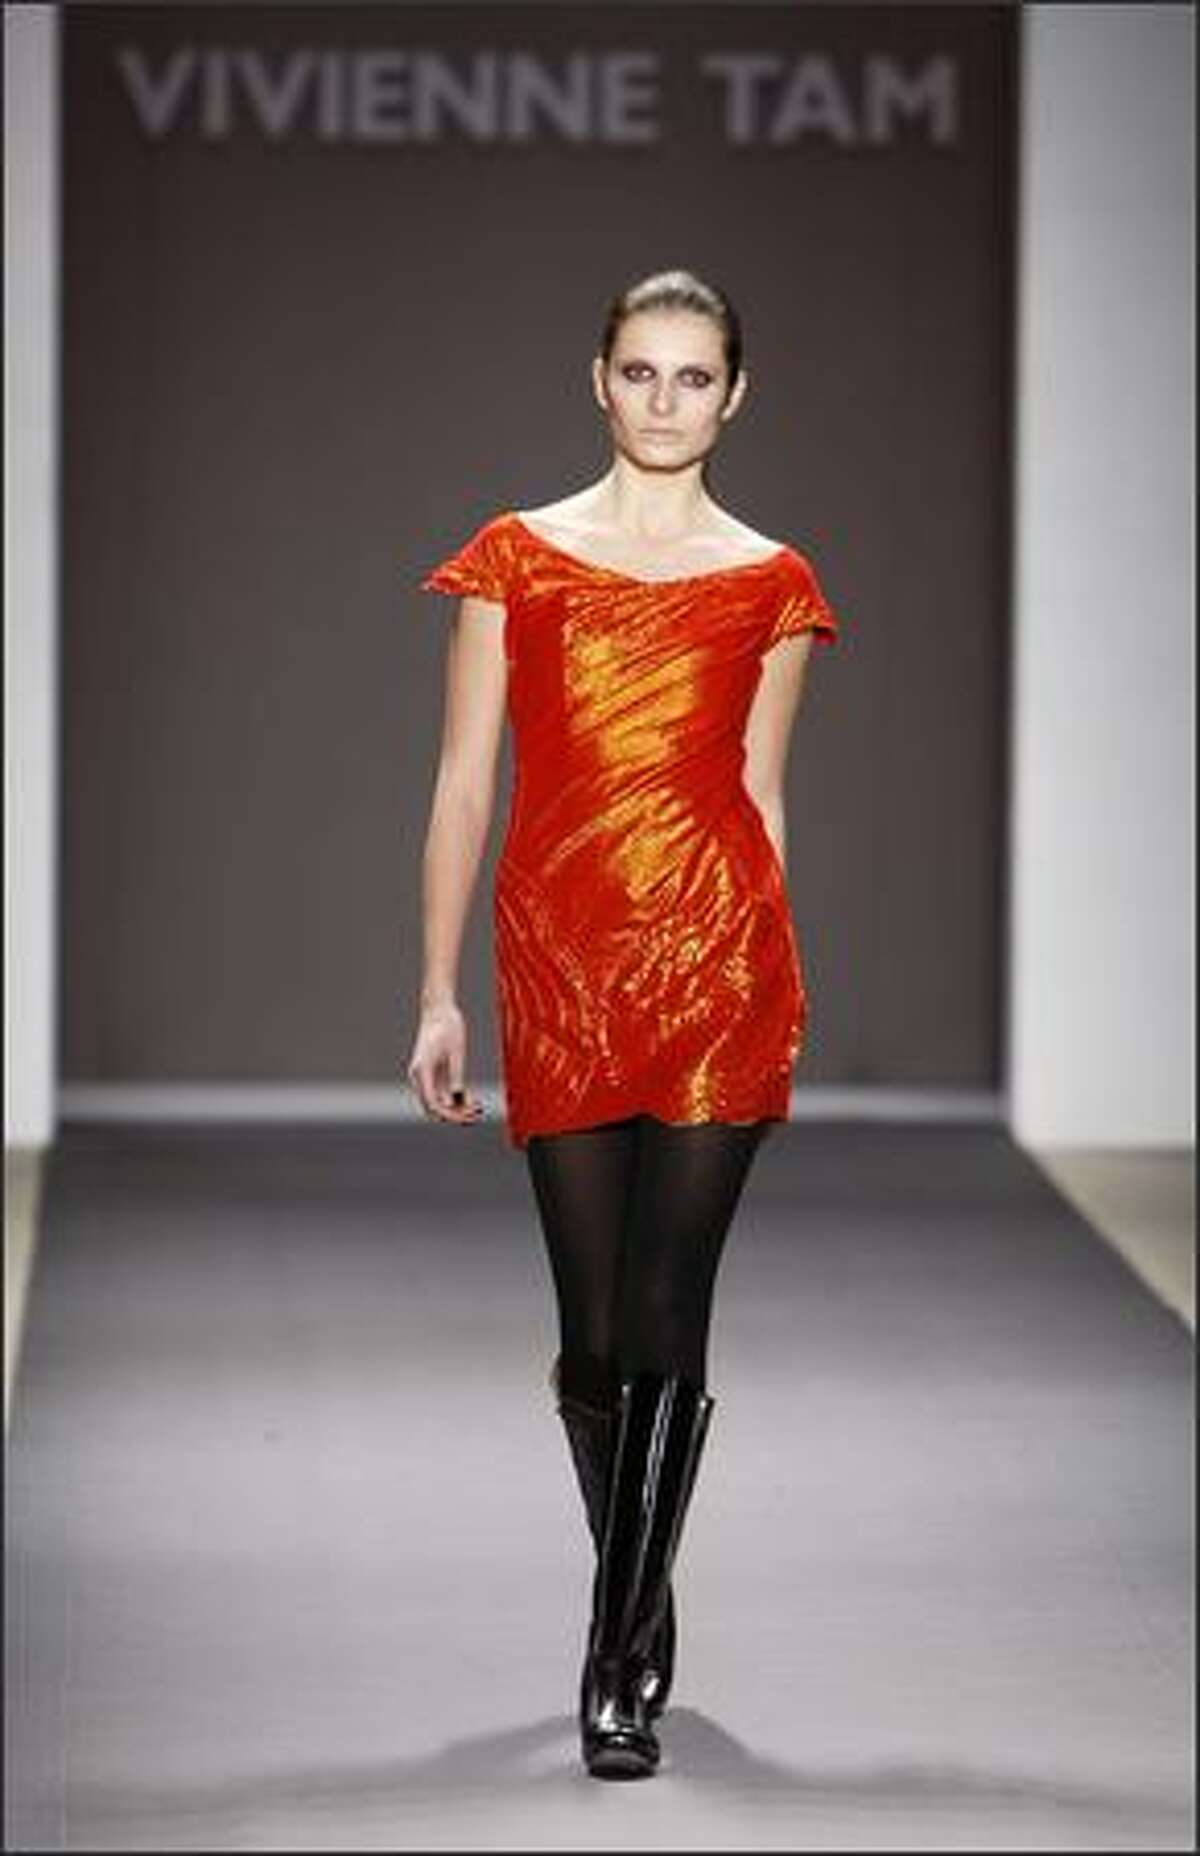 A model displays a creation by Vivienne Tam.